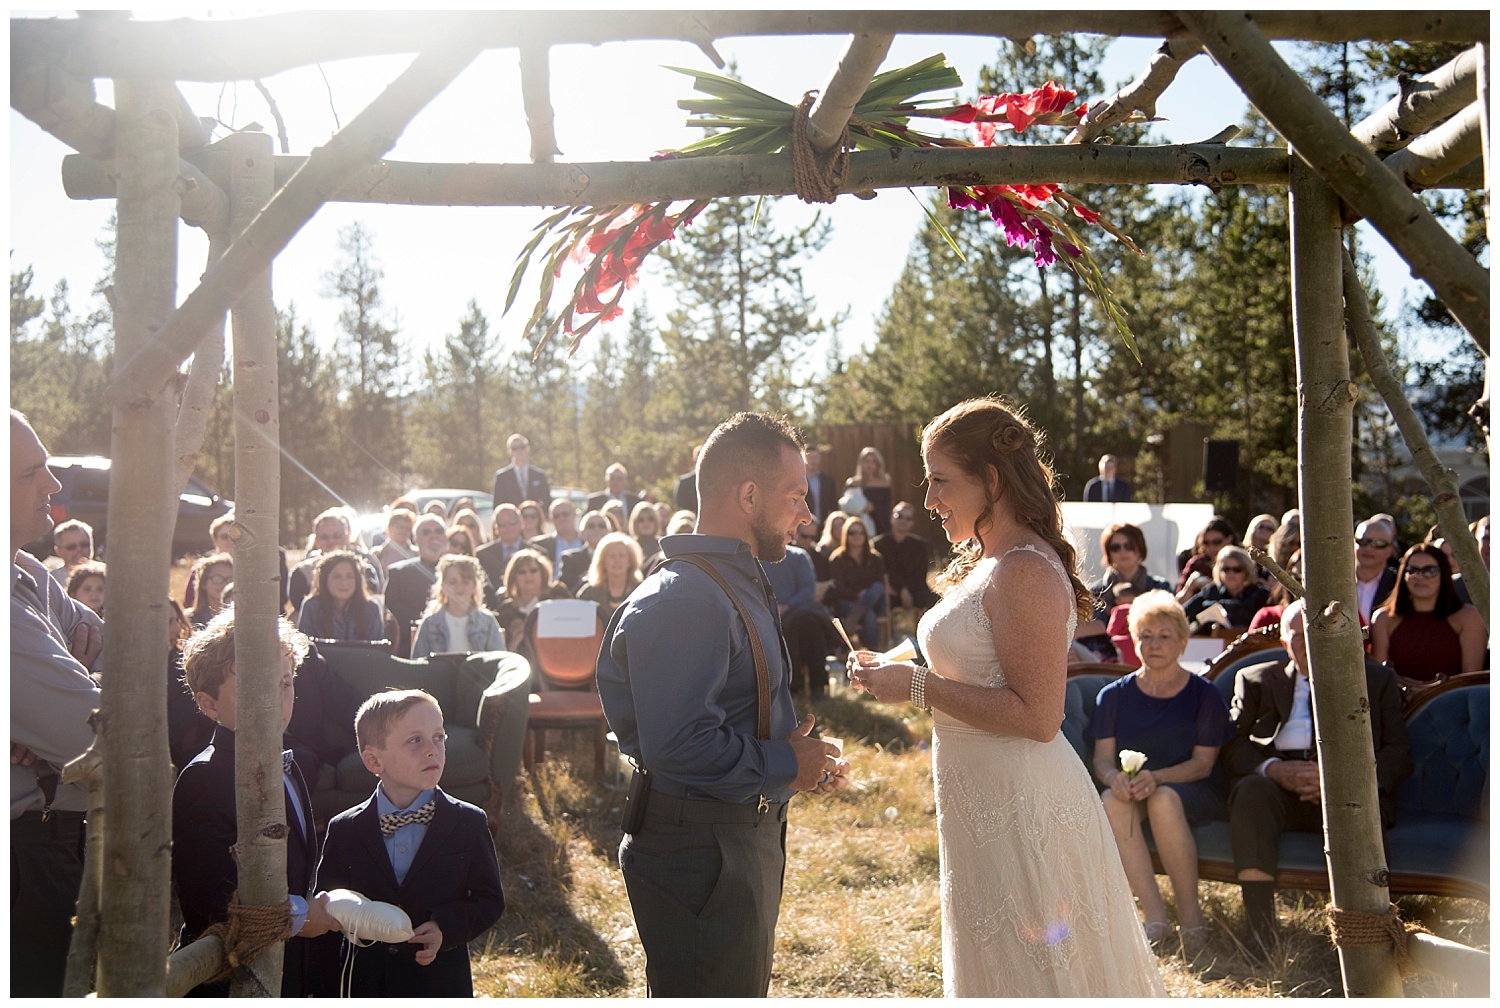 Couple Holding Hands Under Wooden Altar | Carolyn and Shawn's Wild Horse Inn Wedding at Devil's Thumb Ranch | Fraser Colorado Photography | Farm Wedding Photographer | Apollo Fields Photojournalism